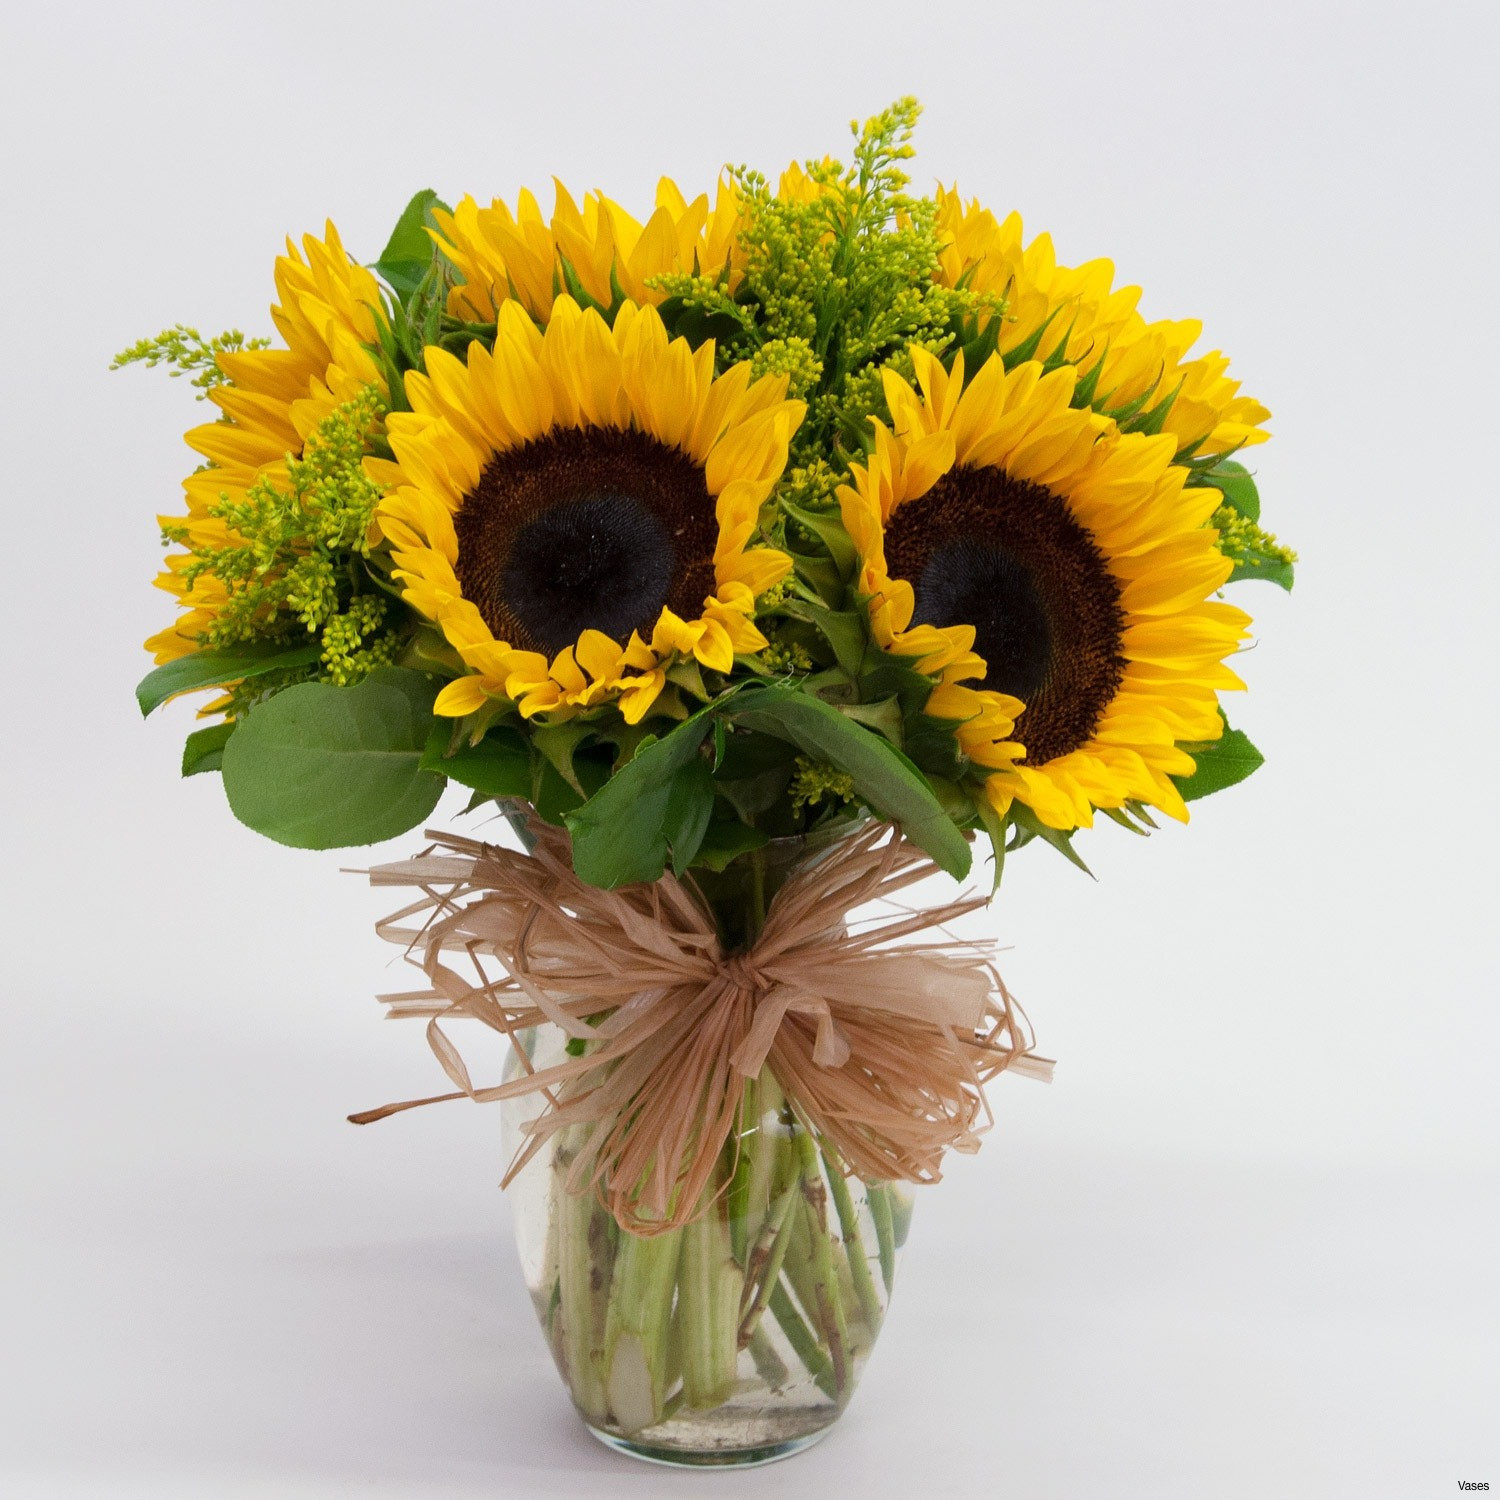 simple vase centerpieces of sunflower images new simple centerpiece a vase inside a vase with with regard to related post